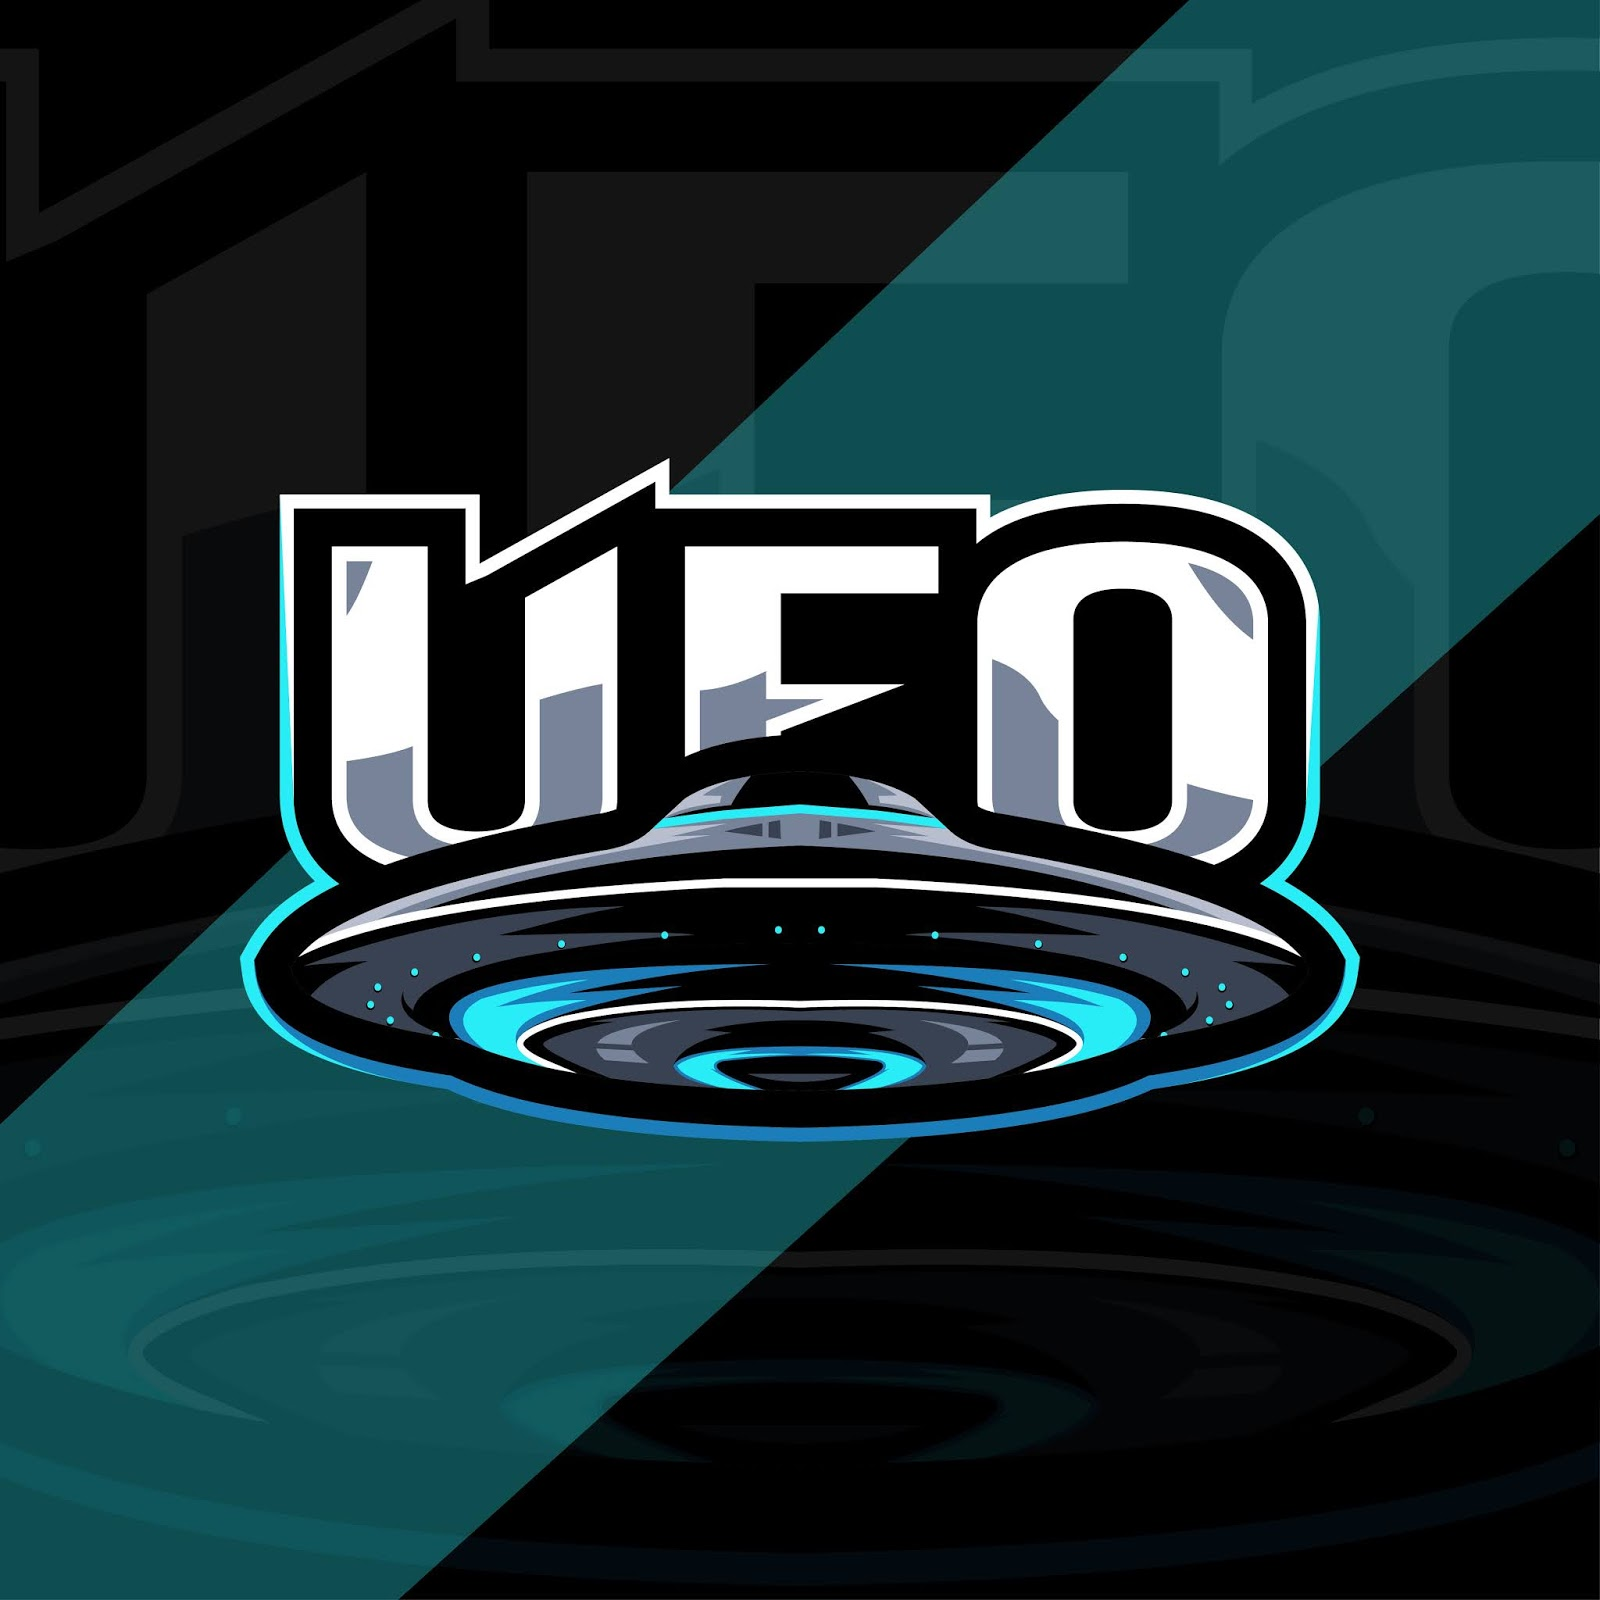 Ufo Mascot Logo Esport Free Download Vector CDR, AI, EPS and PNG Formats